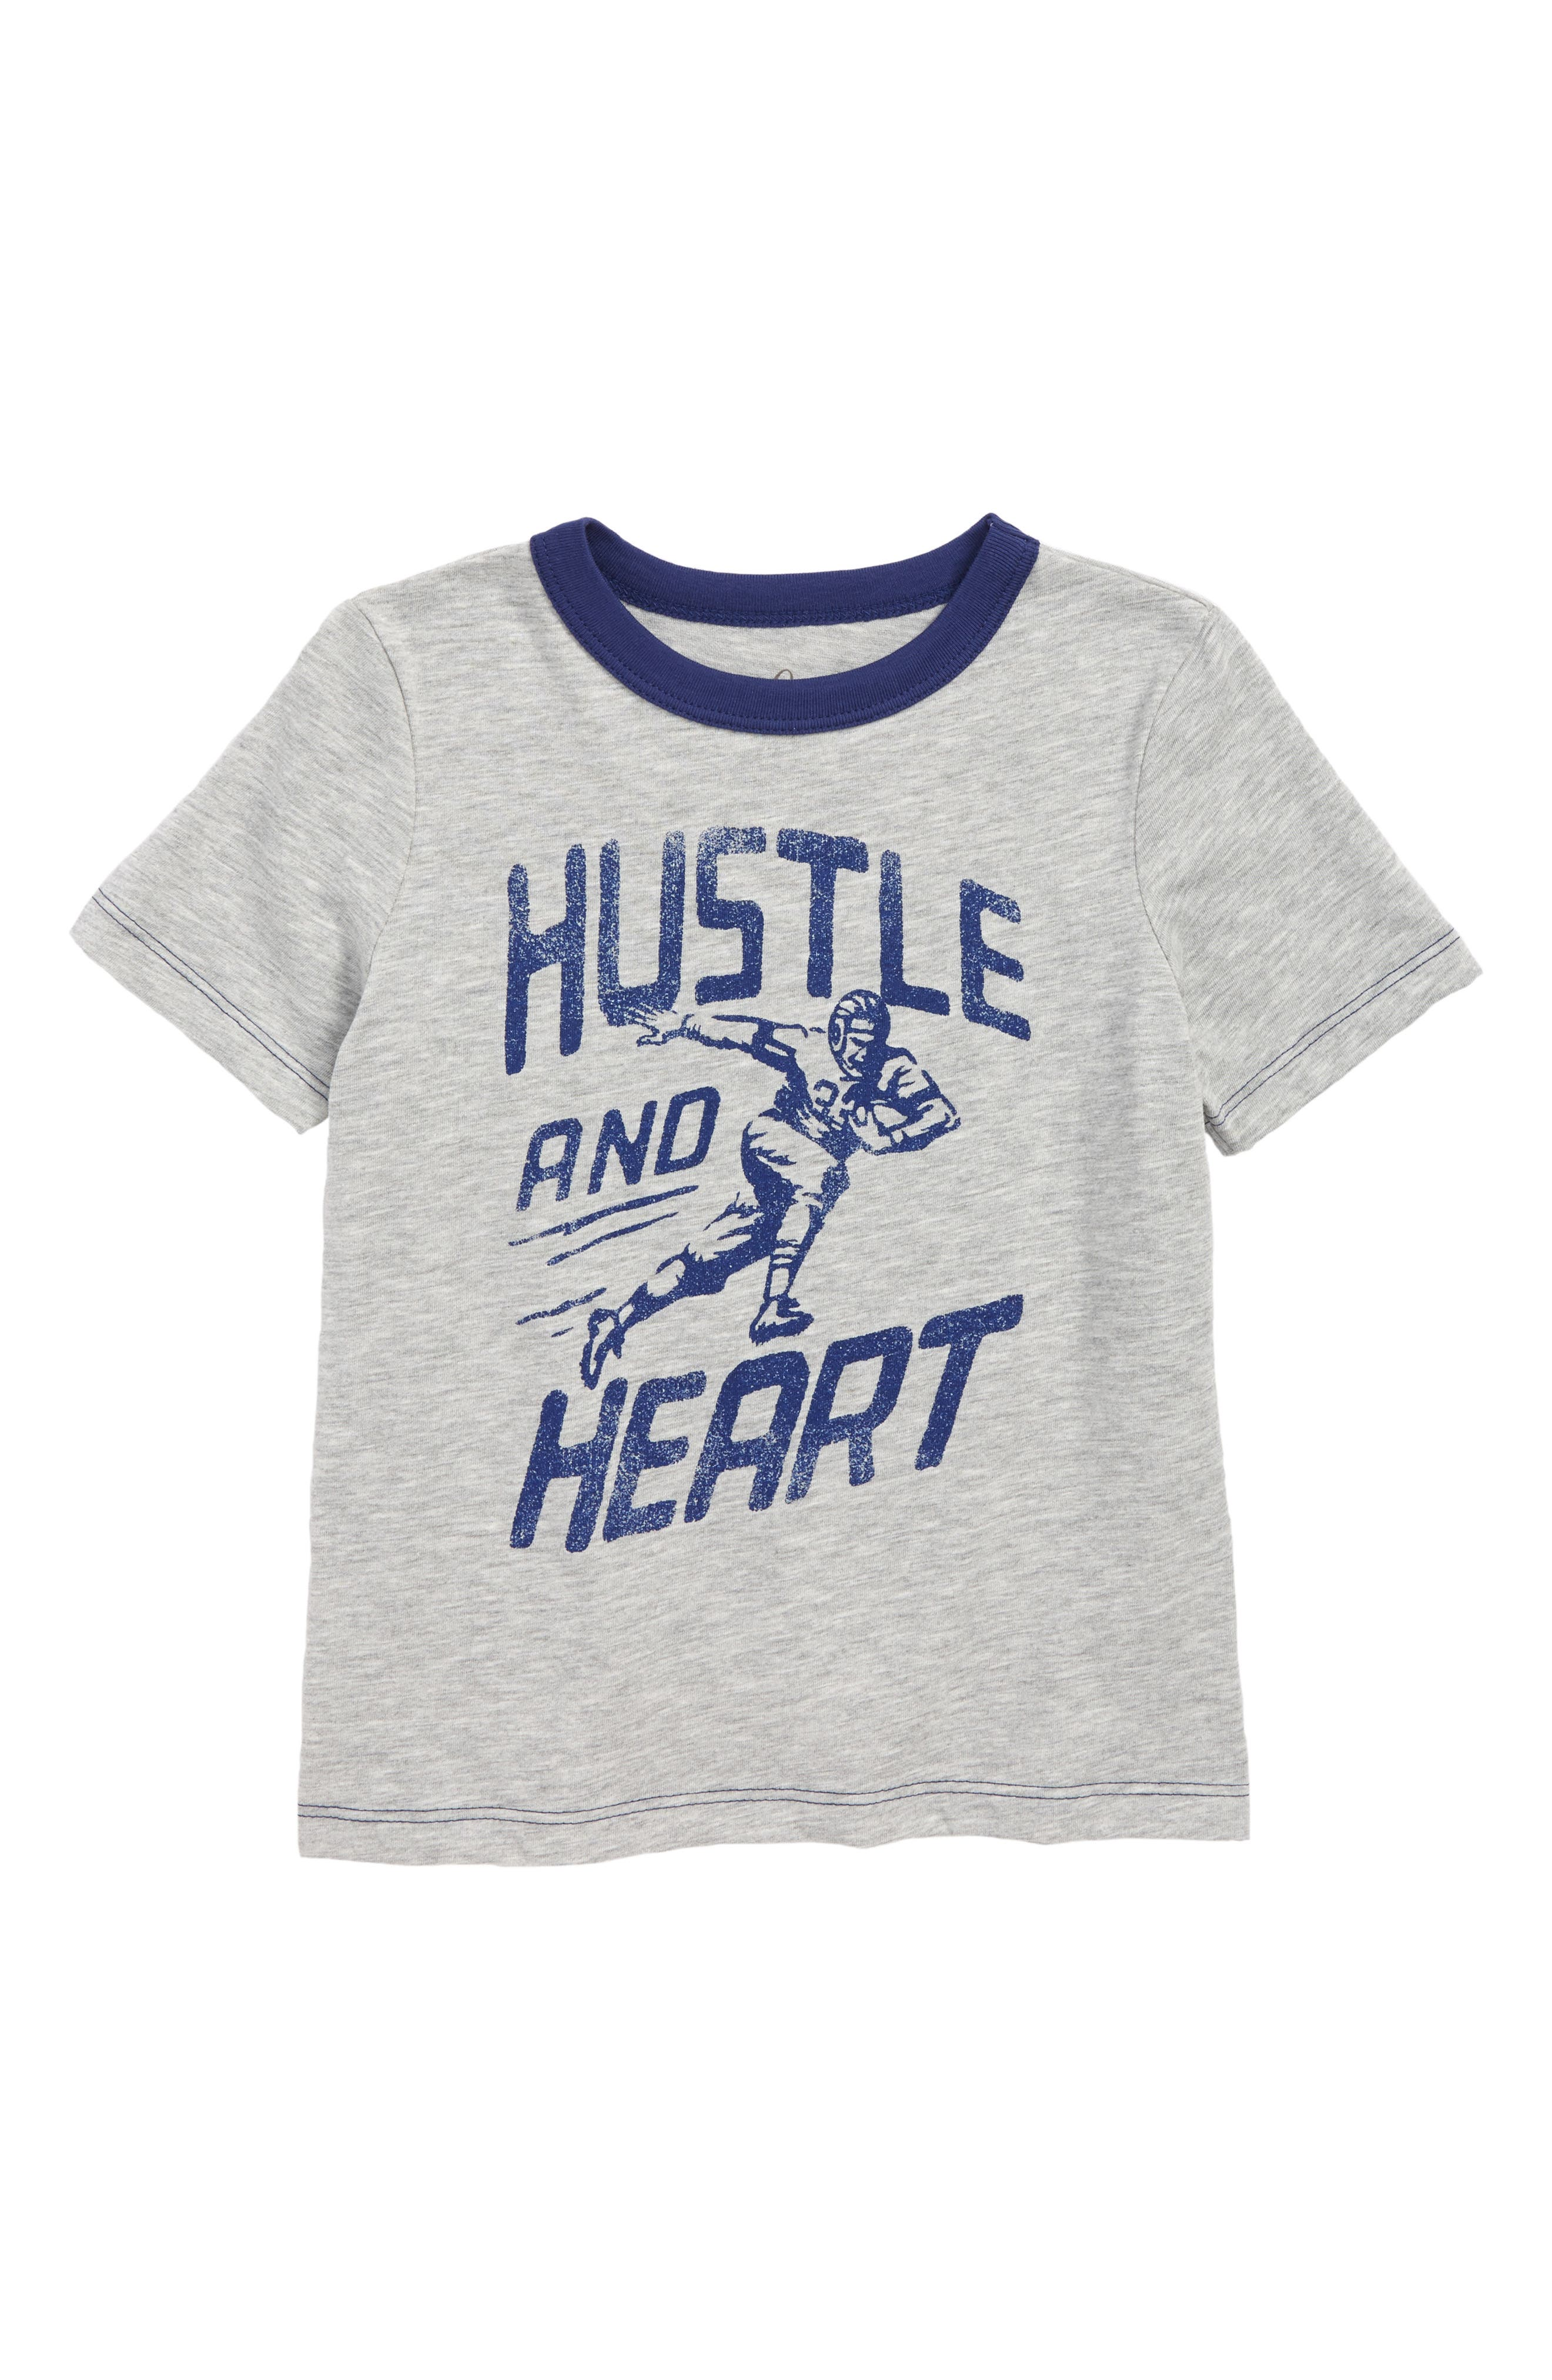 Hustle & Heart Graphic T-Shirt,                             Main thumbnail 1, color,                             LIGHT HEATHER GREY